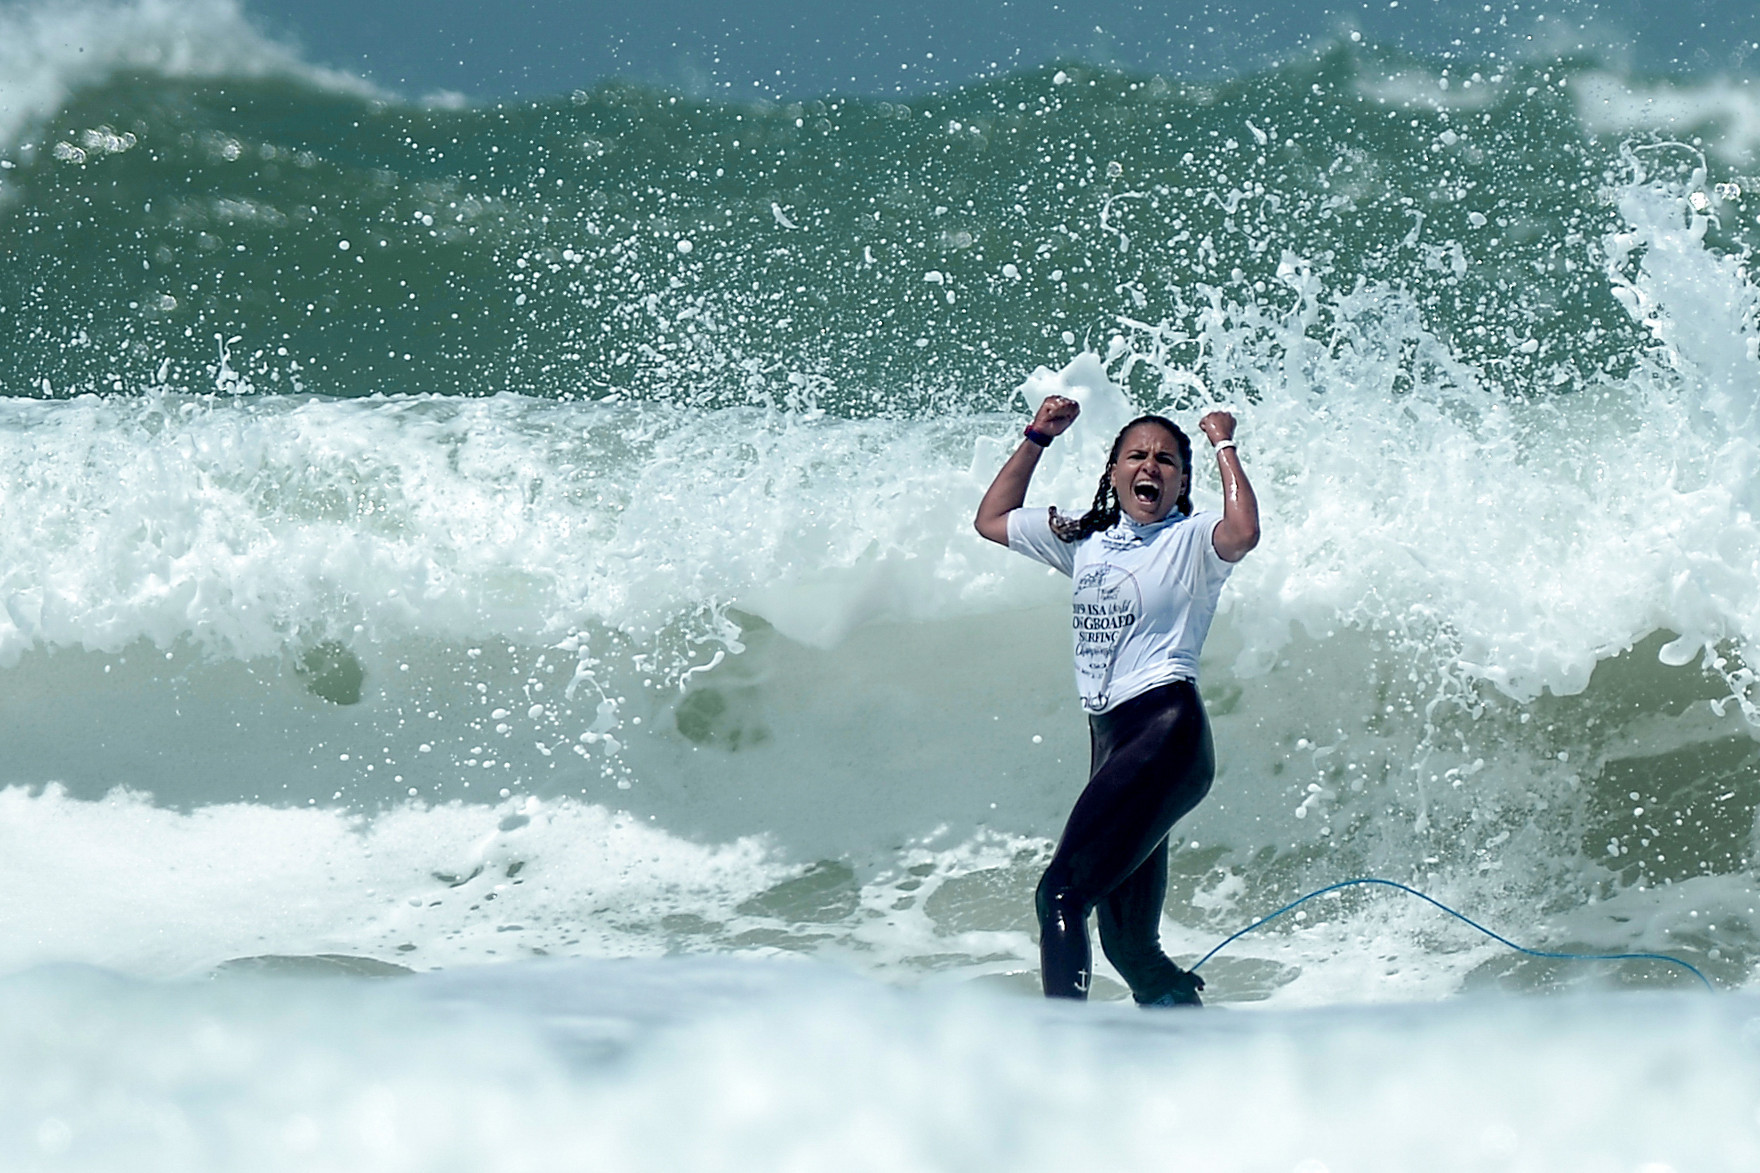 Biarritz hosted the World Longboard Surfing Championship last month ©Getty Images